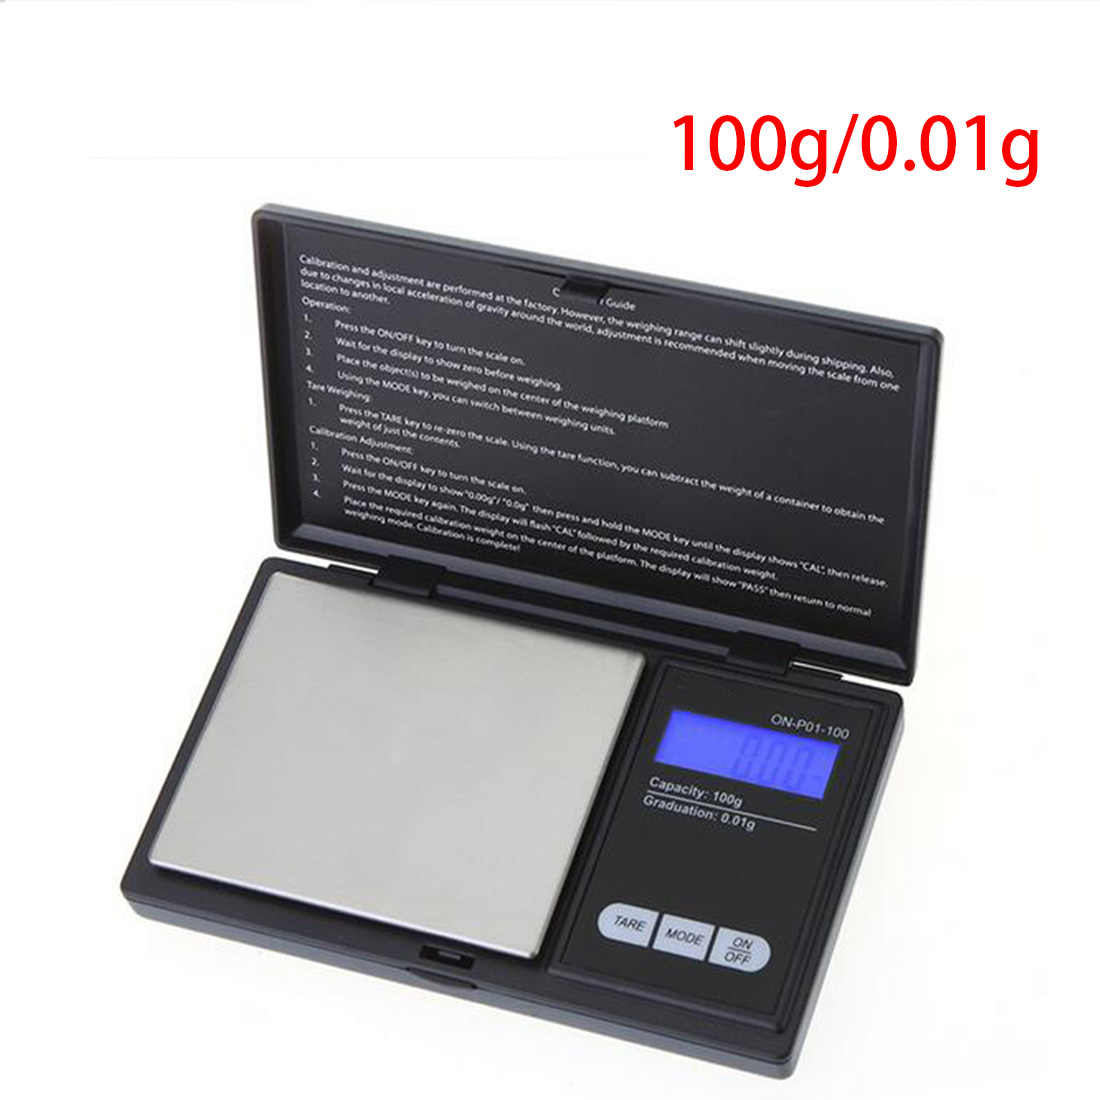 100g/200g x 0.01g Digital Scales Mini Portable Precision Reloading Powder Grain Jewelry Carat Black With Three Weighing Modes